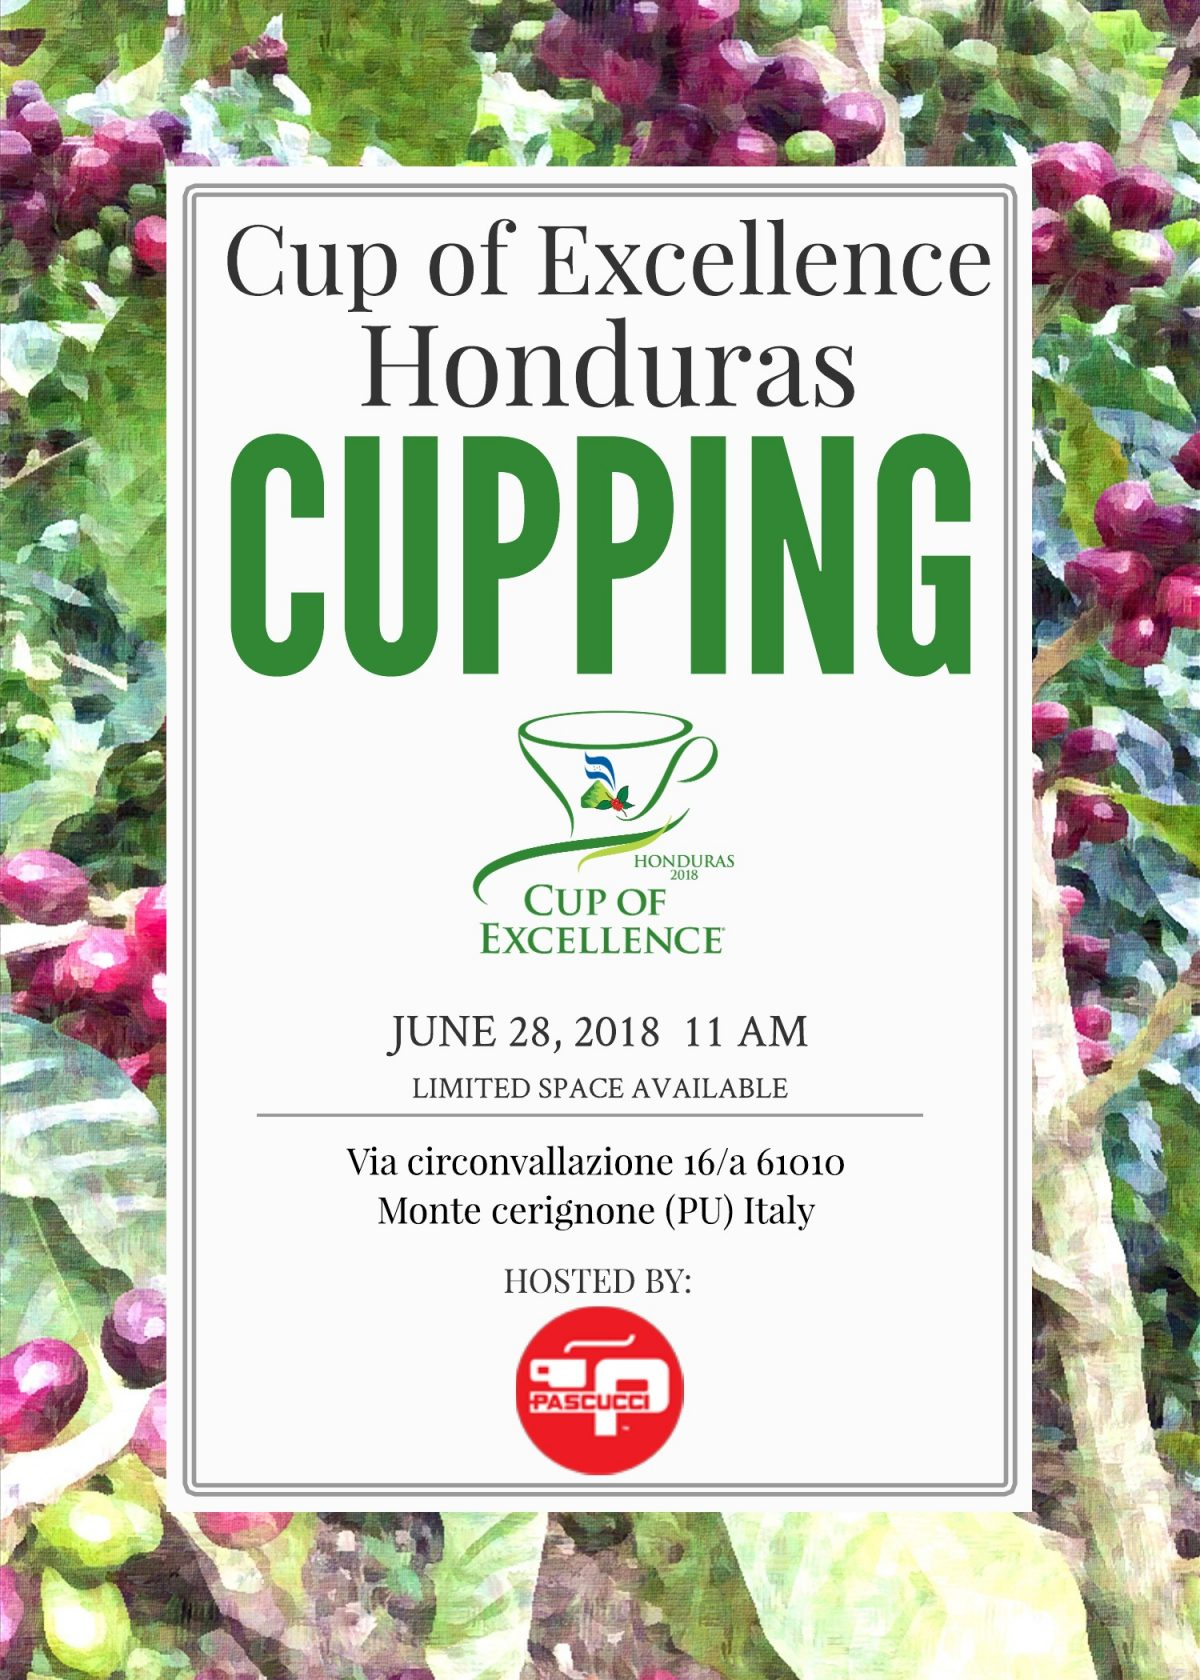 Caffè Pascucci Cup Of Excellence coffee Honduras